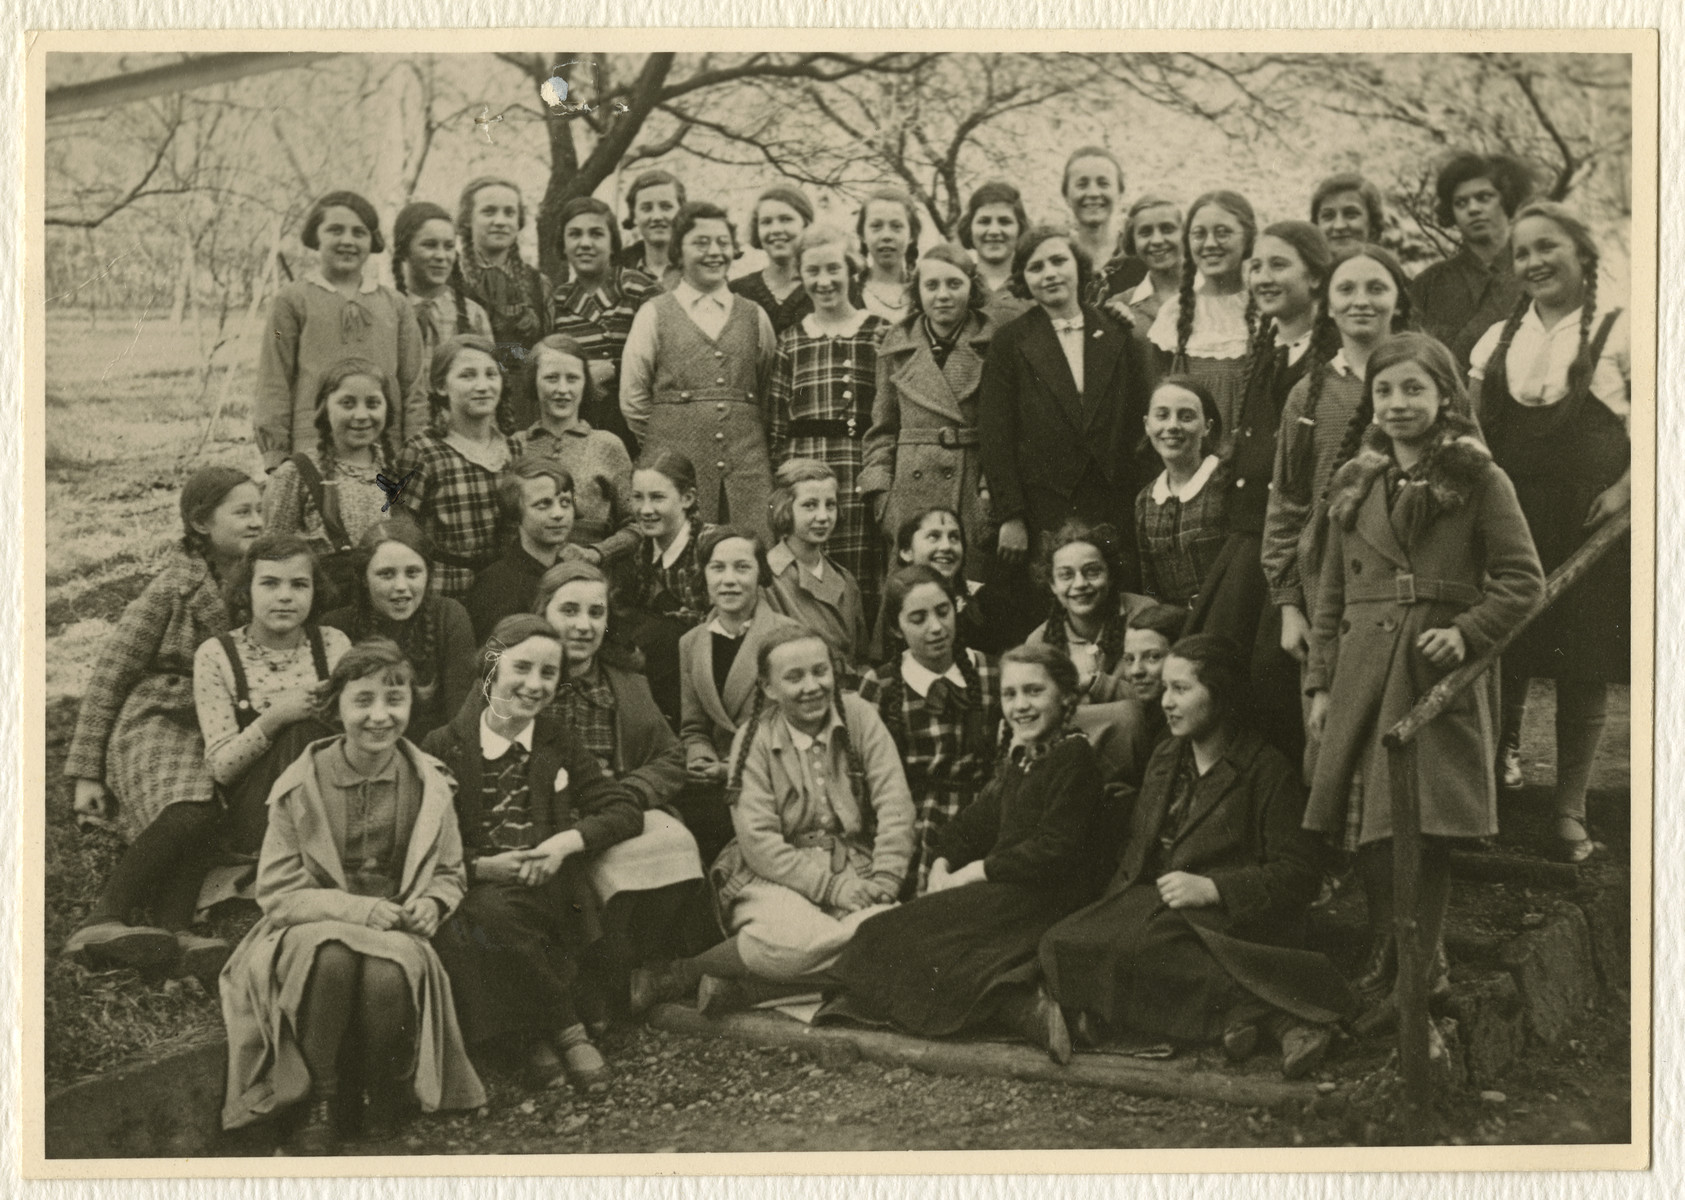 Group portrait of school girls are Esslingen.  Ruth Gold pictured second row, second from the left is the only Jewish student.